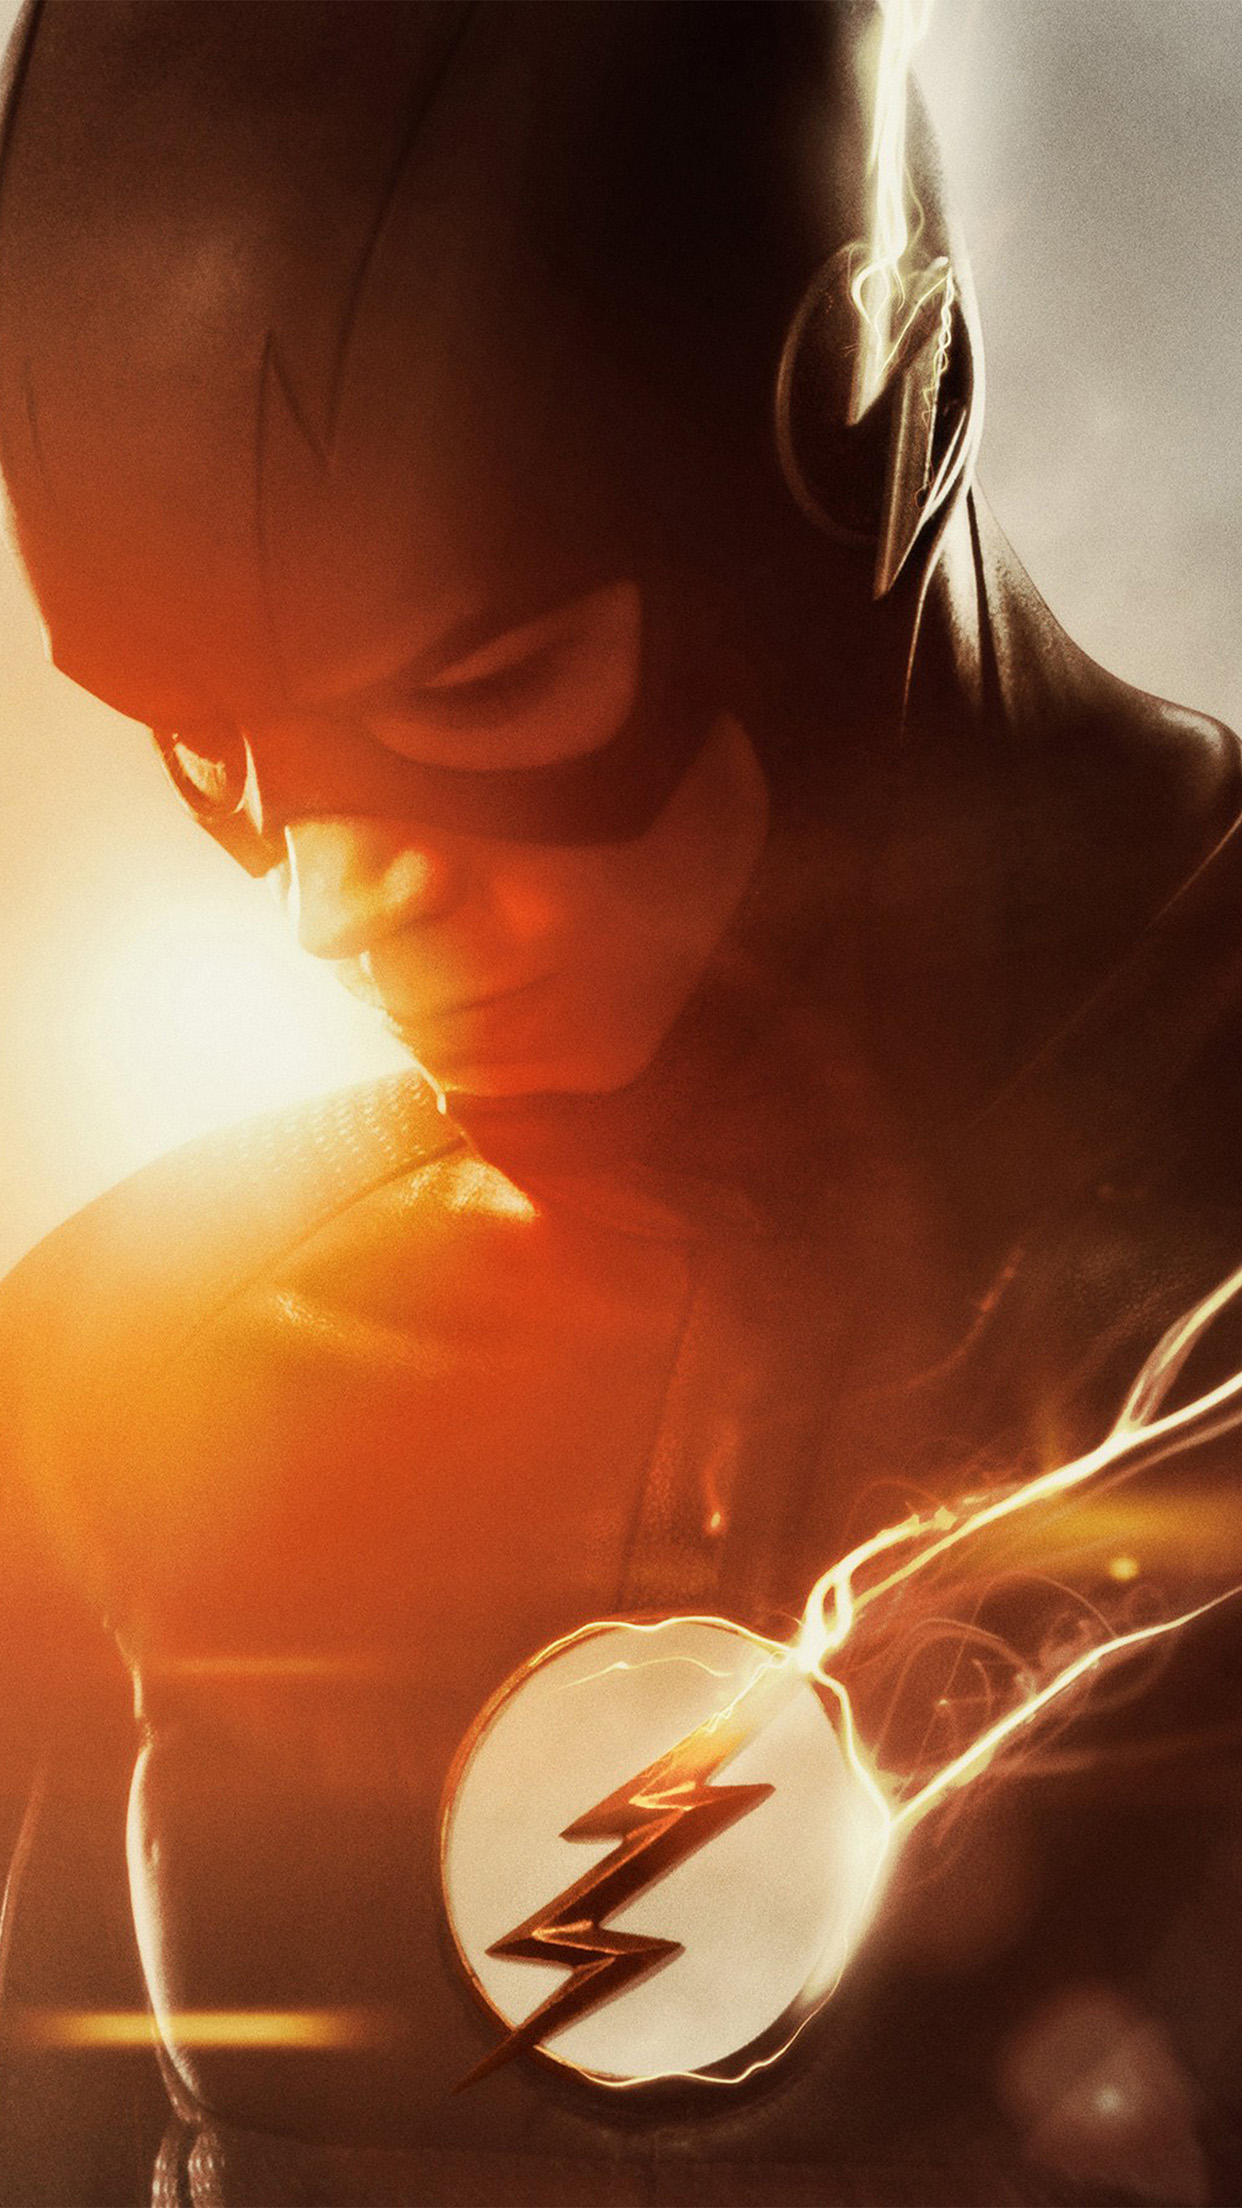 The Flash Tv Series Hero Film Art Android Wallpaper Android Hd